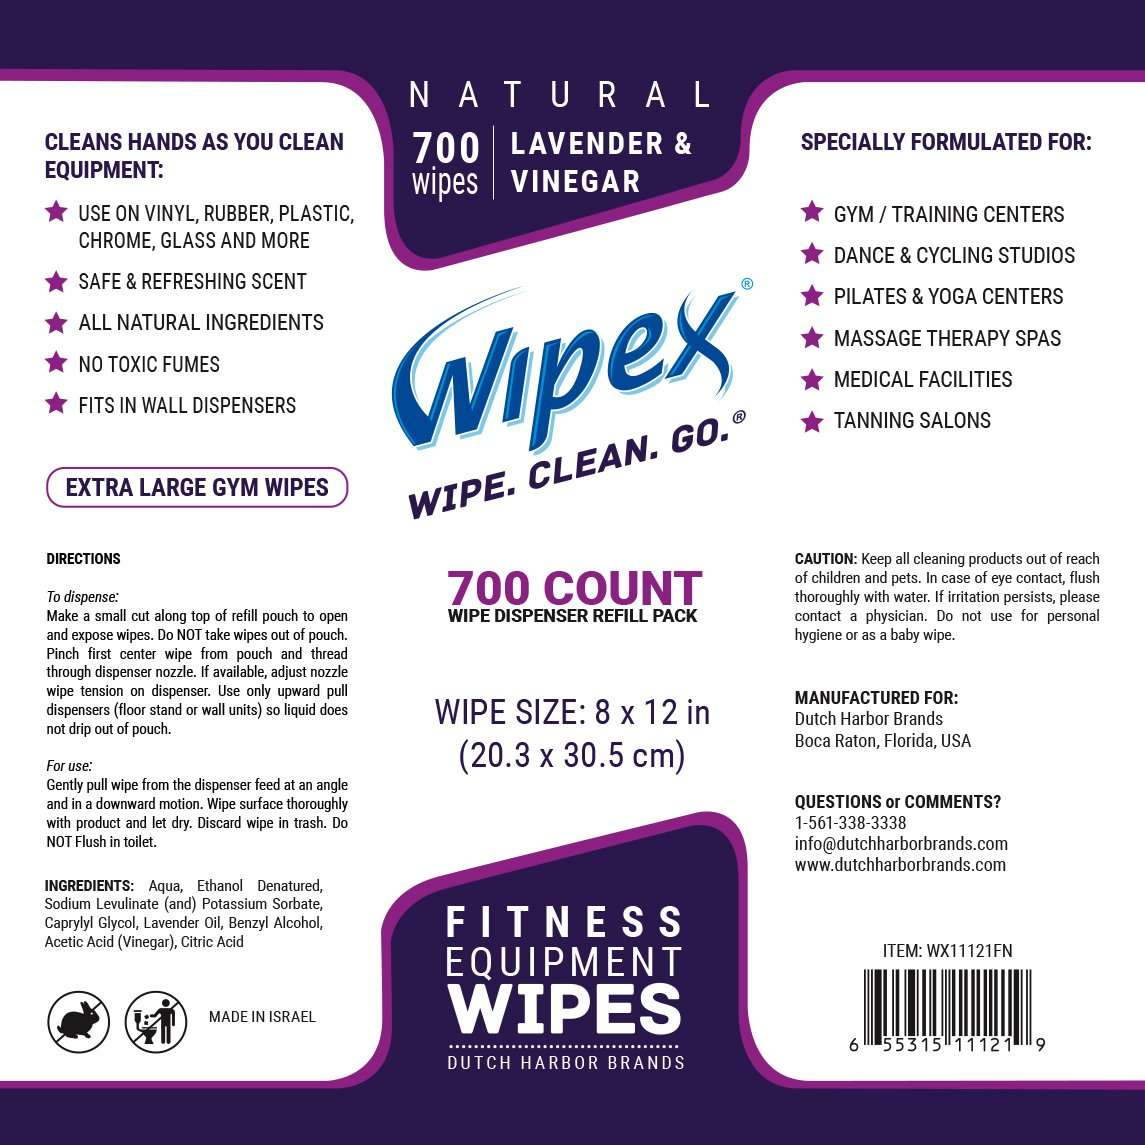 Wipex Gym & Fitness Equipment Wipes with Lavender & Vinegar Great for Yoga Studios